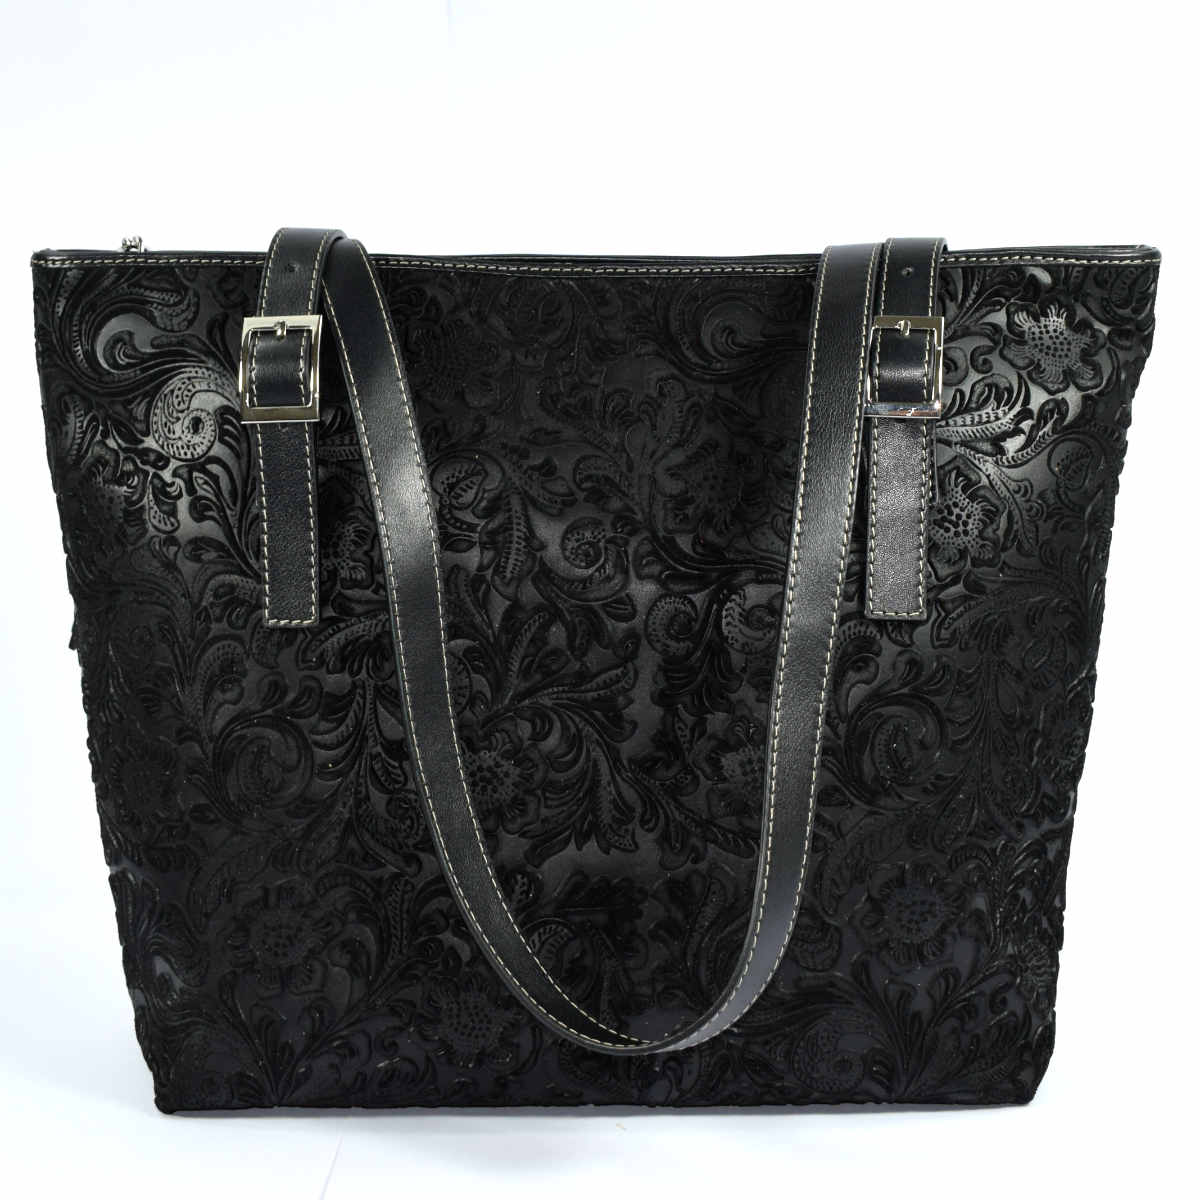 11958 SHOPPING BAG WITH ZIPPER by Bottega Fiorentina